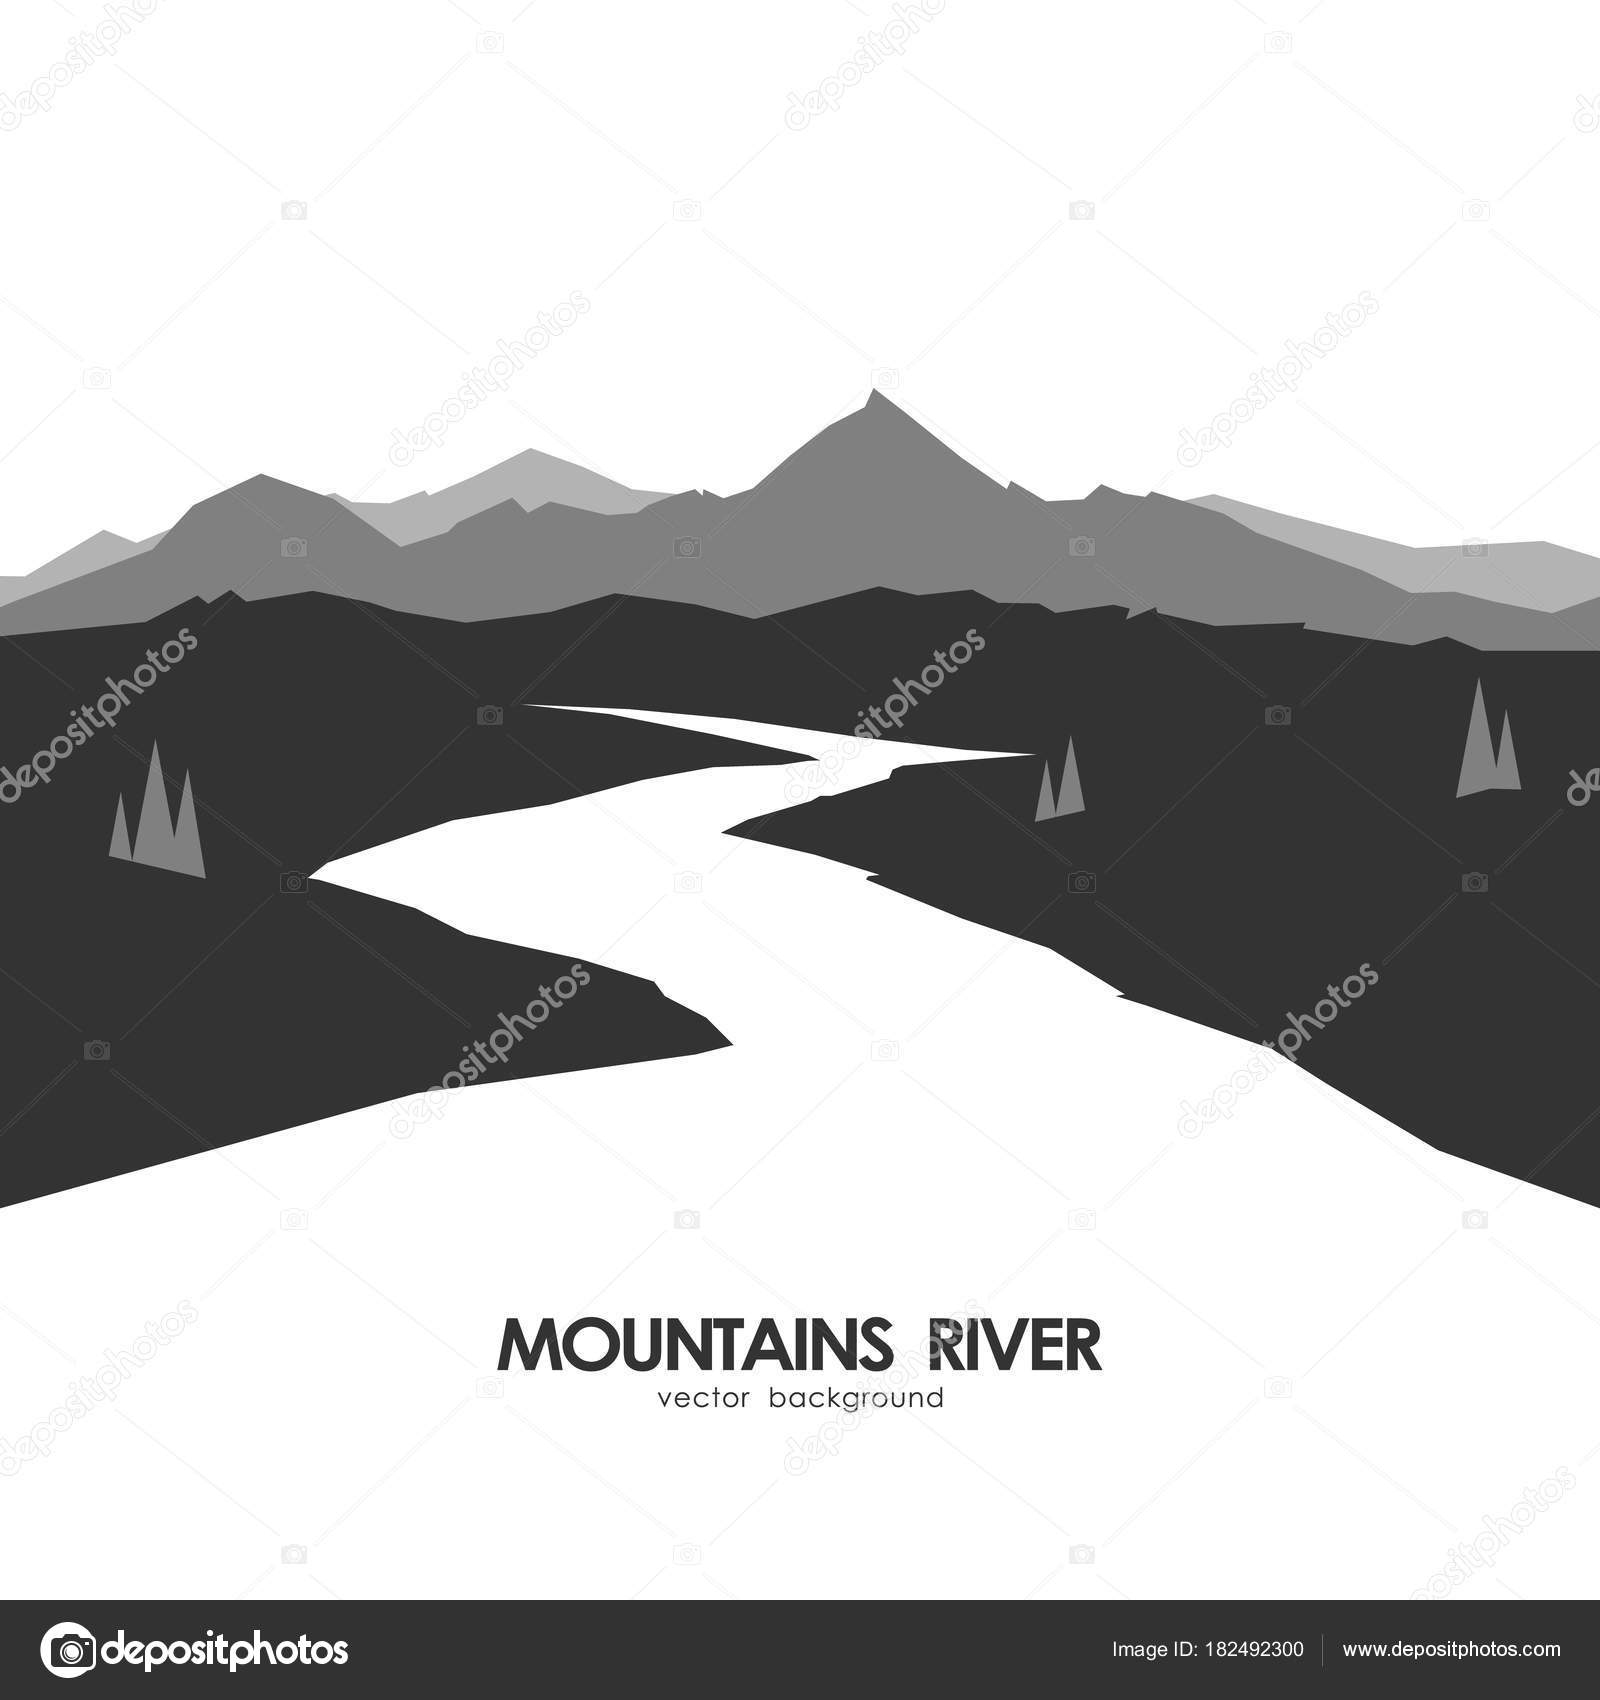 monochrome mountains landscape with white river stock vector c deniskrivoy photo gmail com 182492300 https depositphotos com 182492300 stock illustration monochrome mountains landscape with white html